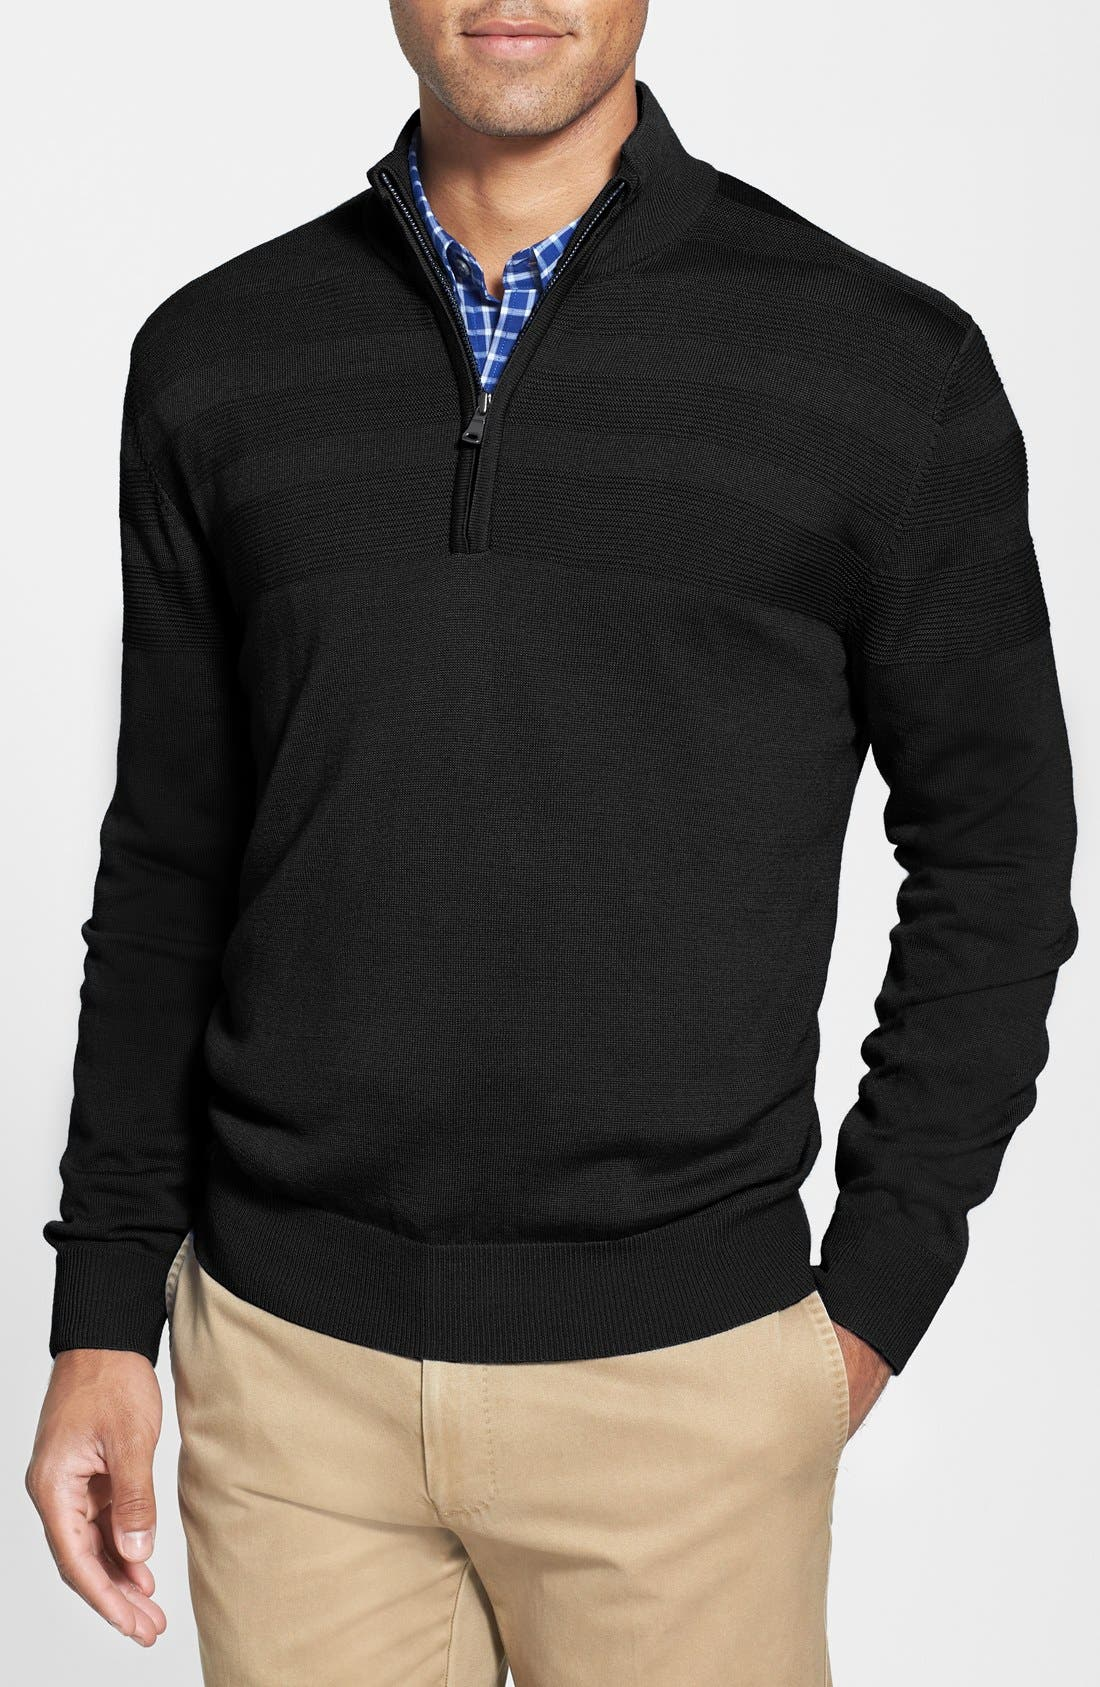 'Douglas' Merino Wool Blend Half Zip Sweater, Main, color, 001